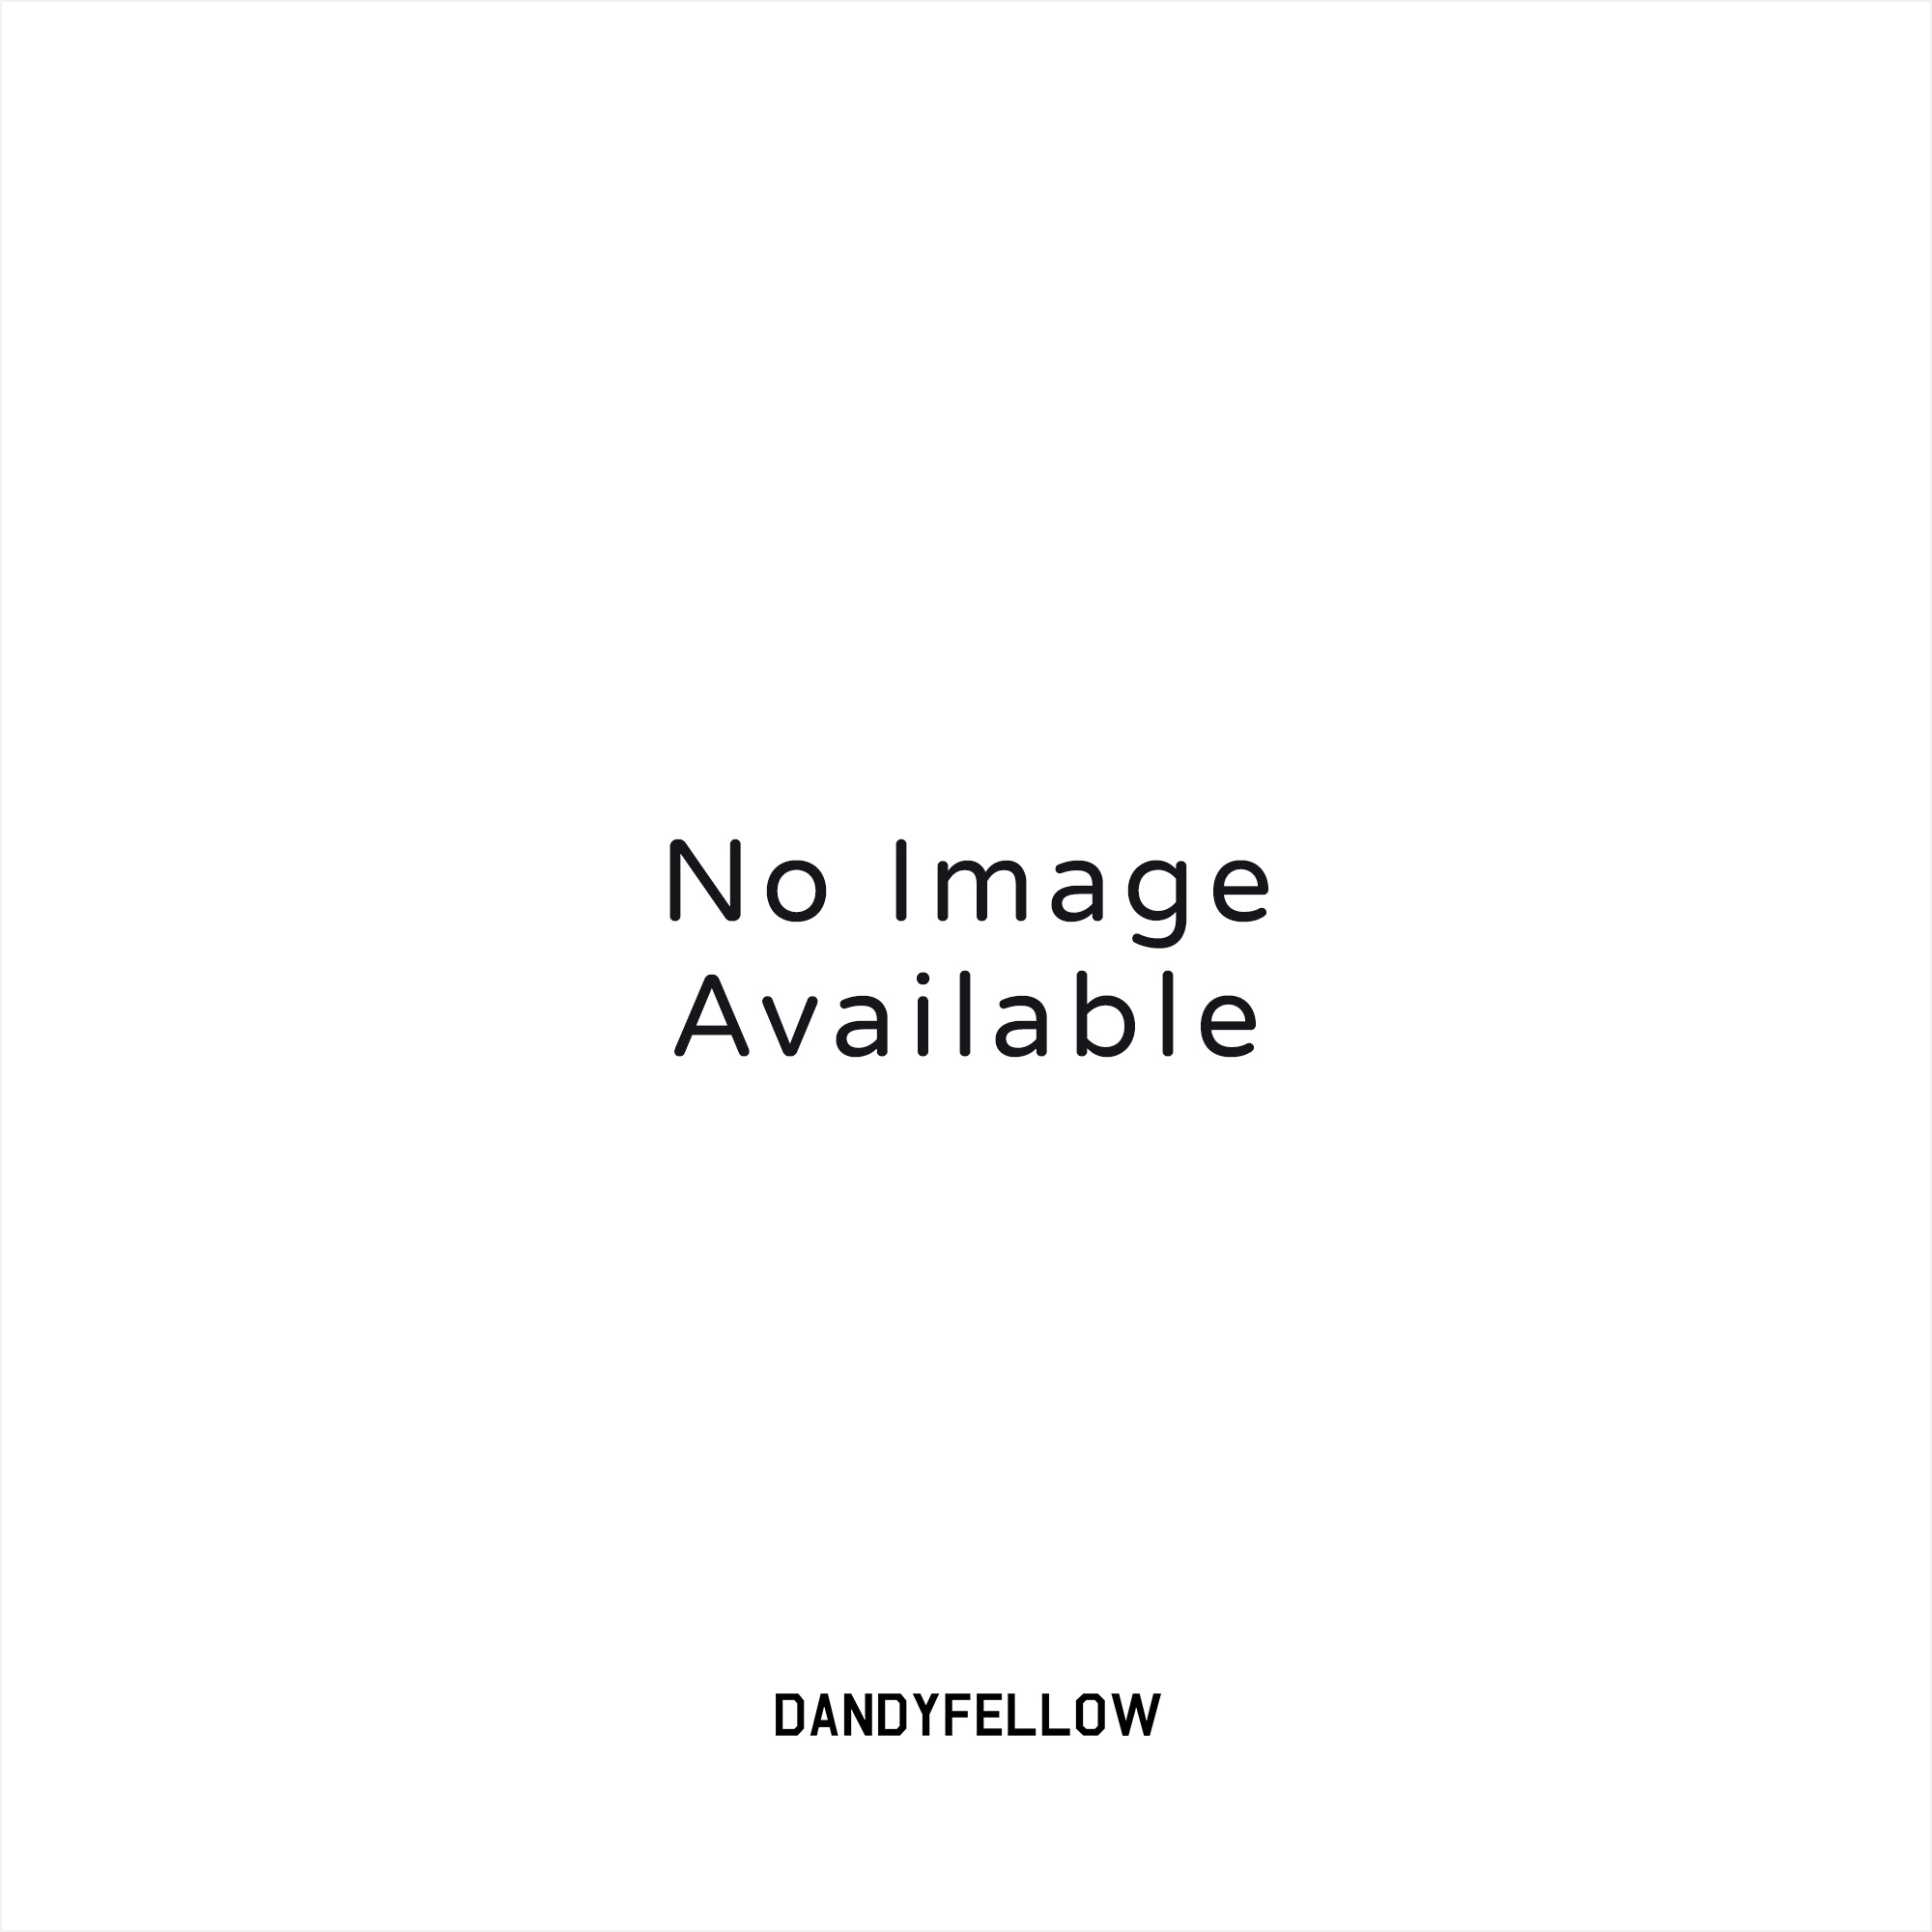 b26914e6336 Adidas Y-3 Bashyo II (Black) at Dandy Fellow